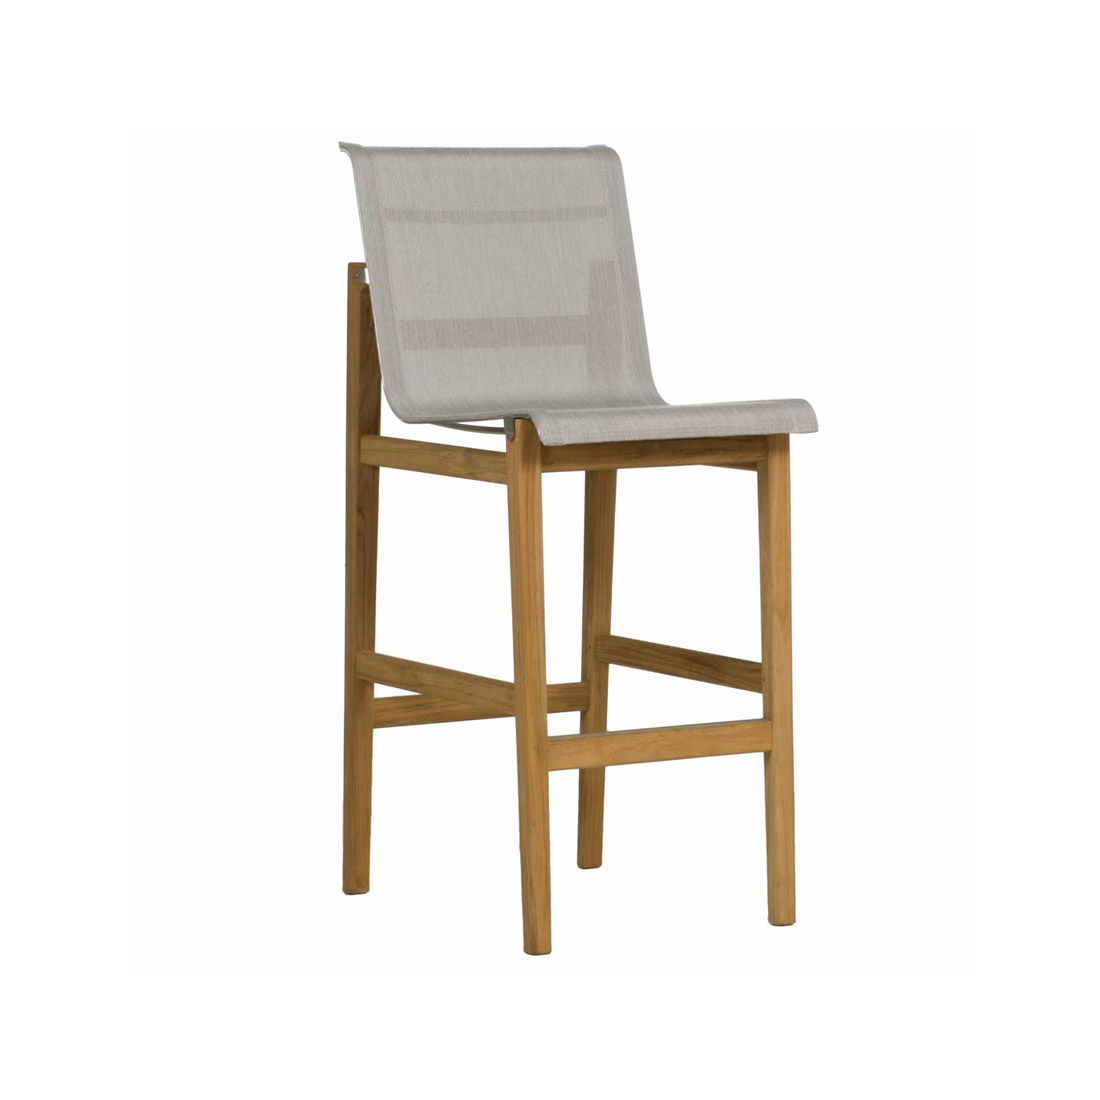 COAST BAR STOOL copy.jpg